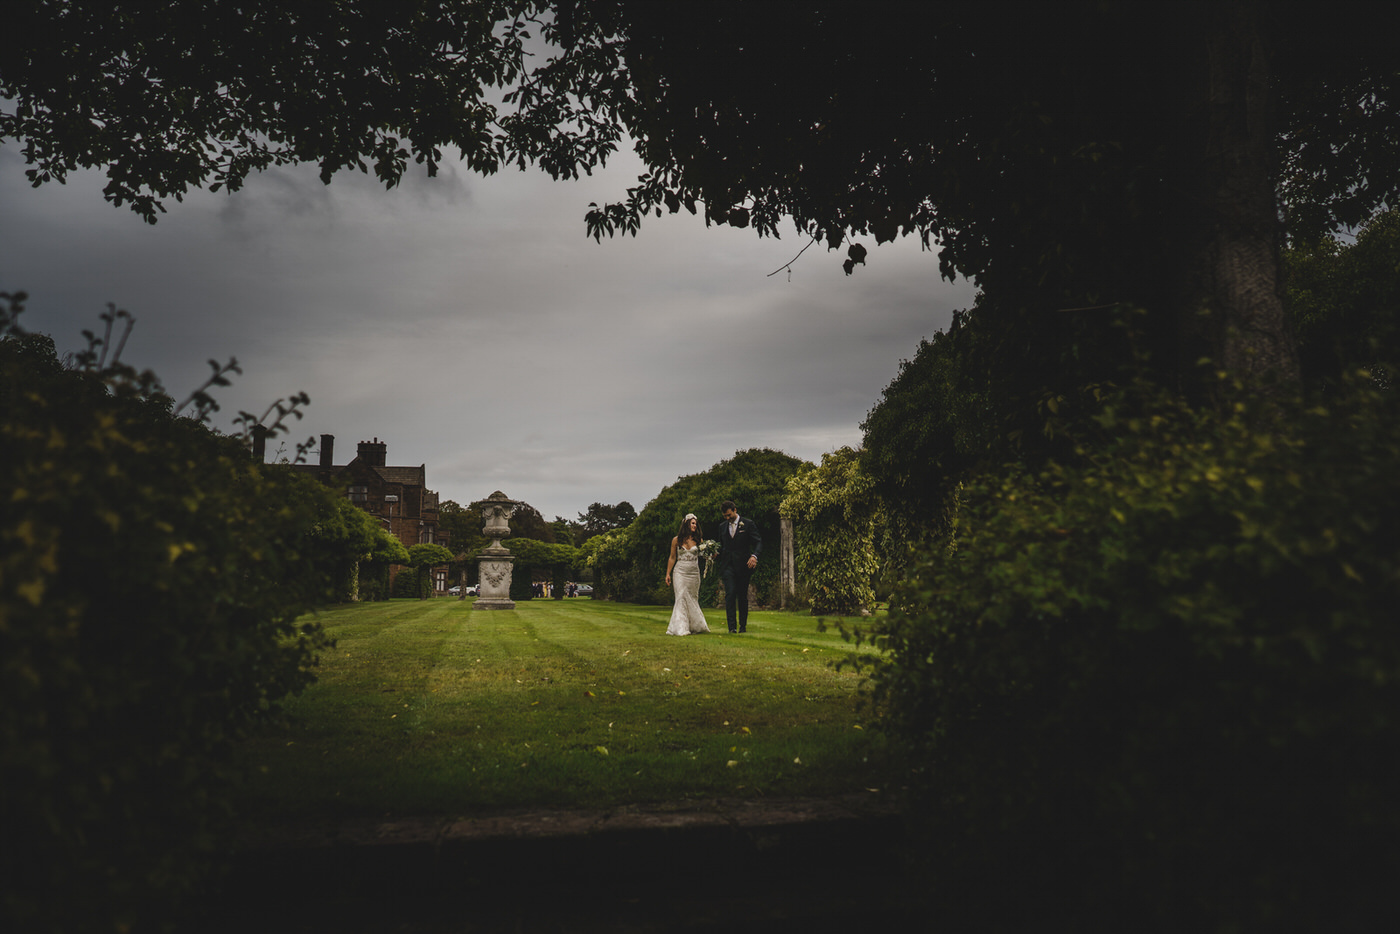 the newlyweds walk towards an opening in the gardens on their wedding day